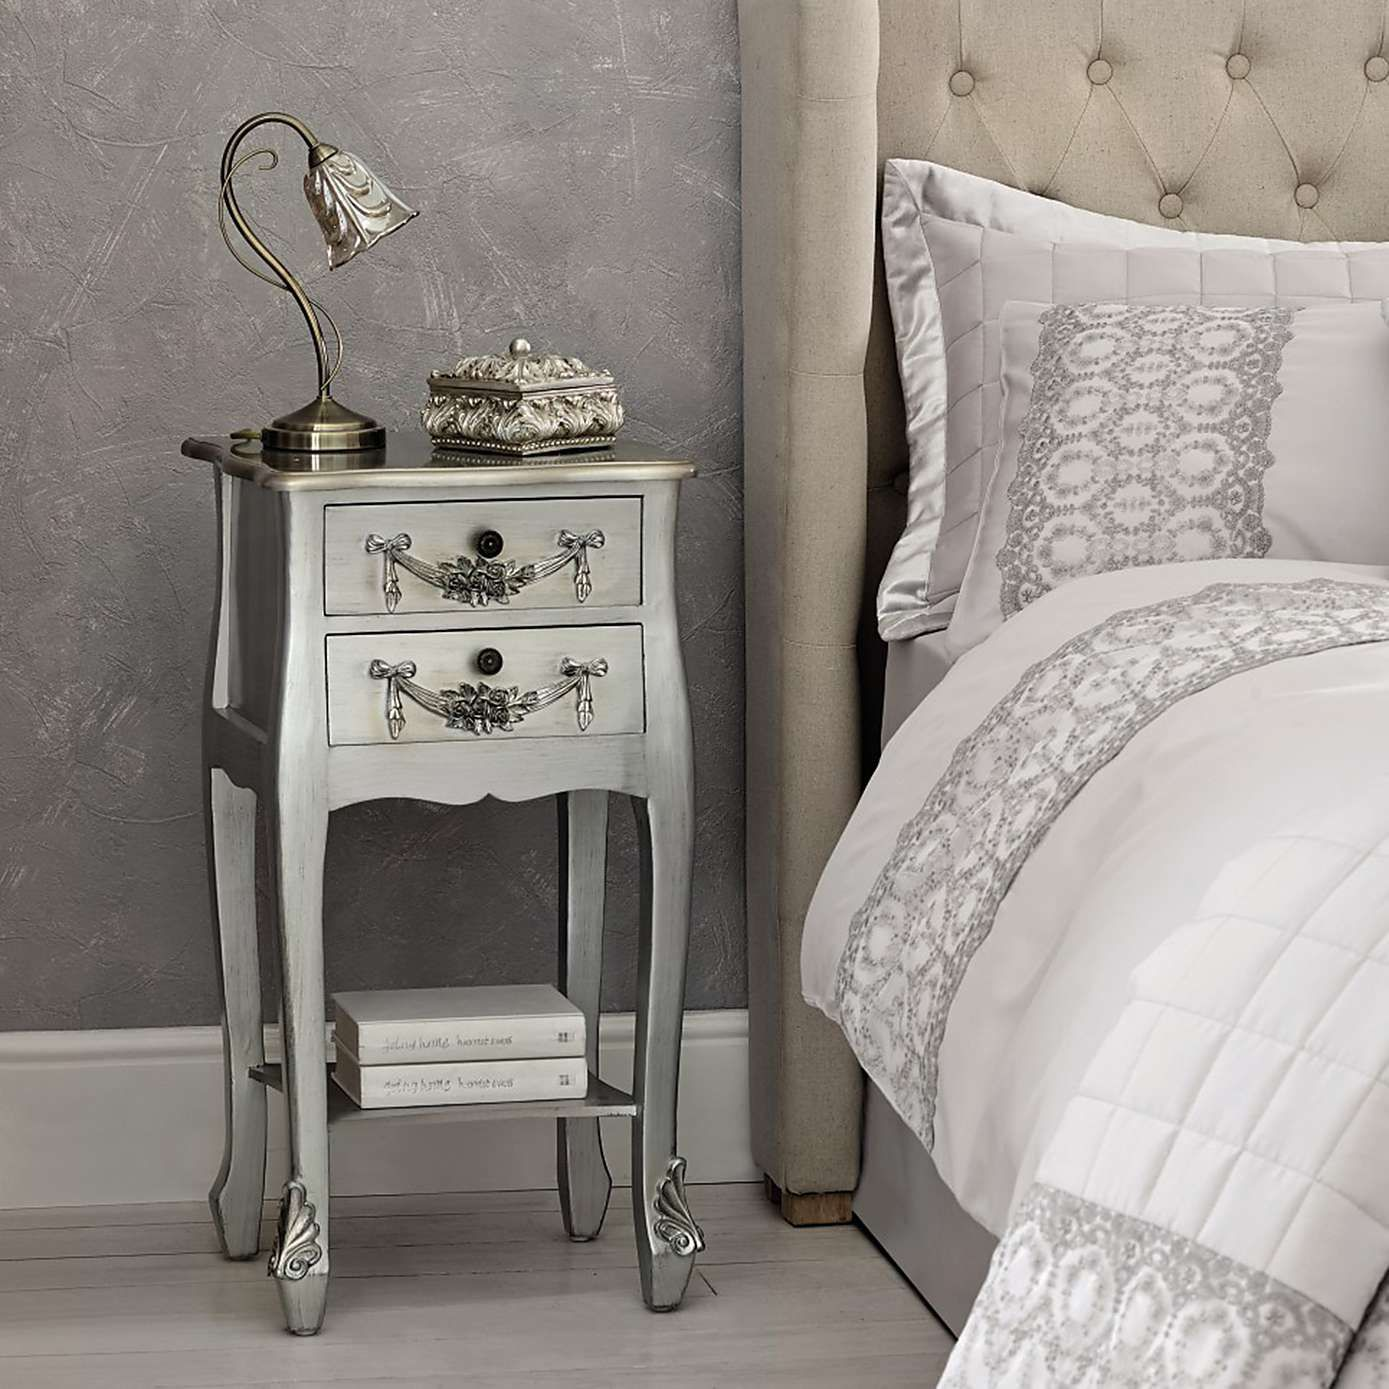 toulouse silver  drawer nightstand  dunelm  bedroom ideas  - toulouse silver  drawer nightstand  dunelm